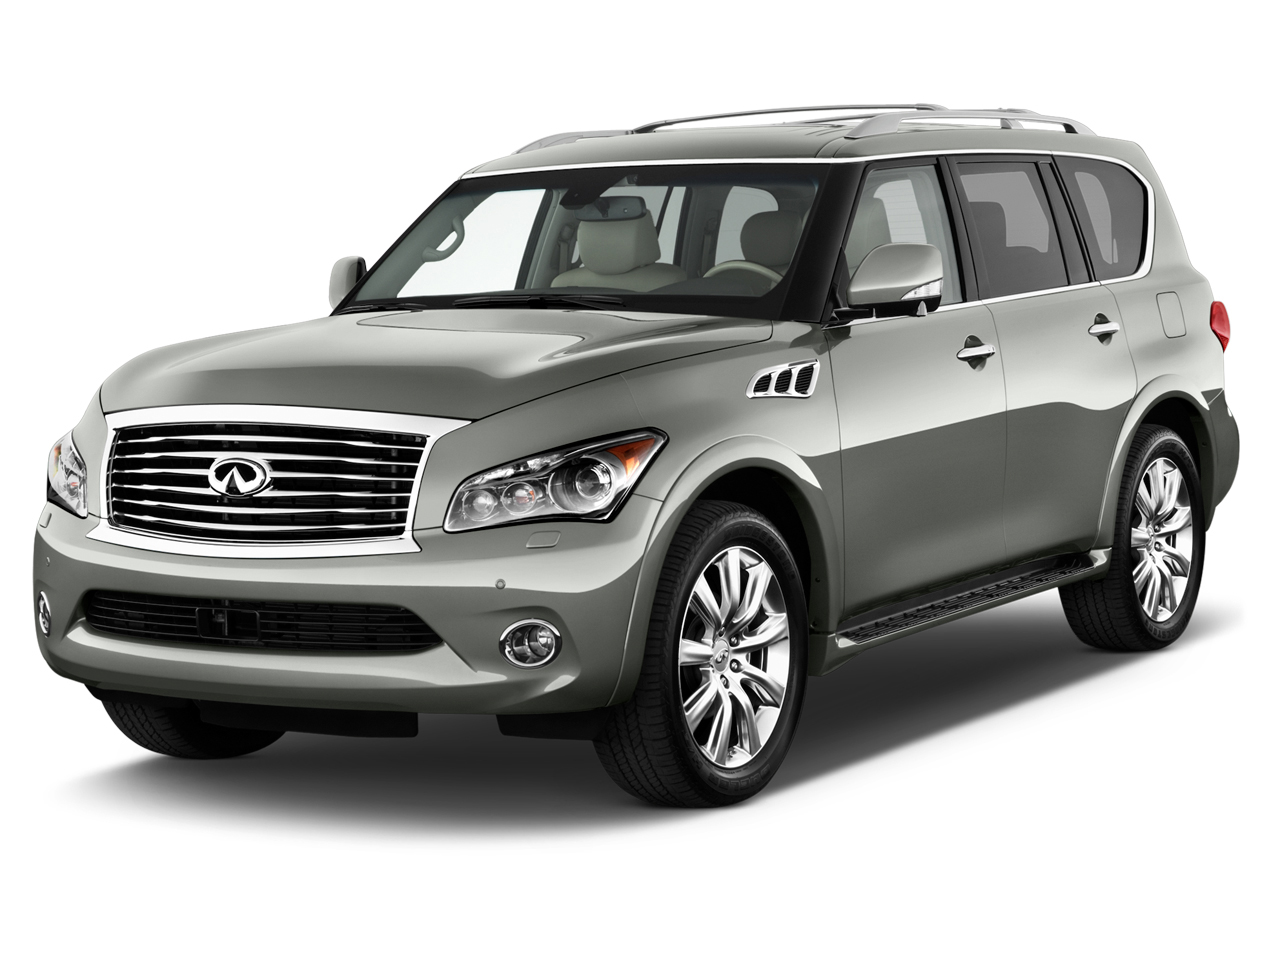 2012 Infiniti Qx56 Review Ratings Specs Prices And